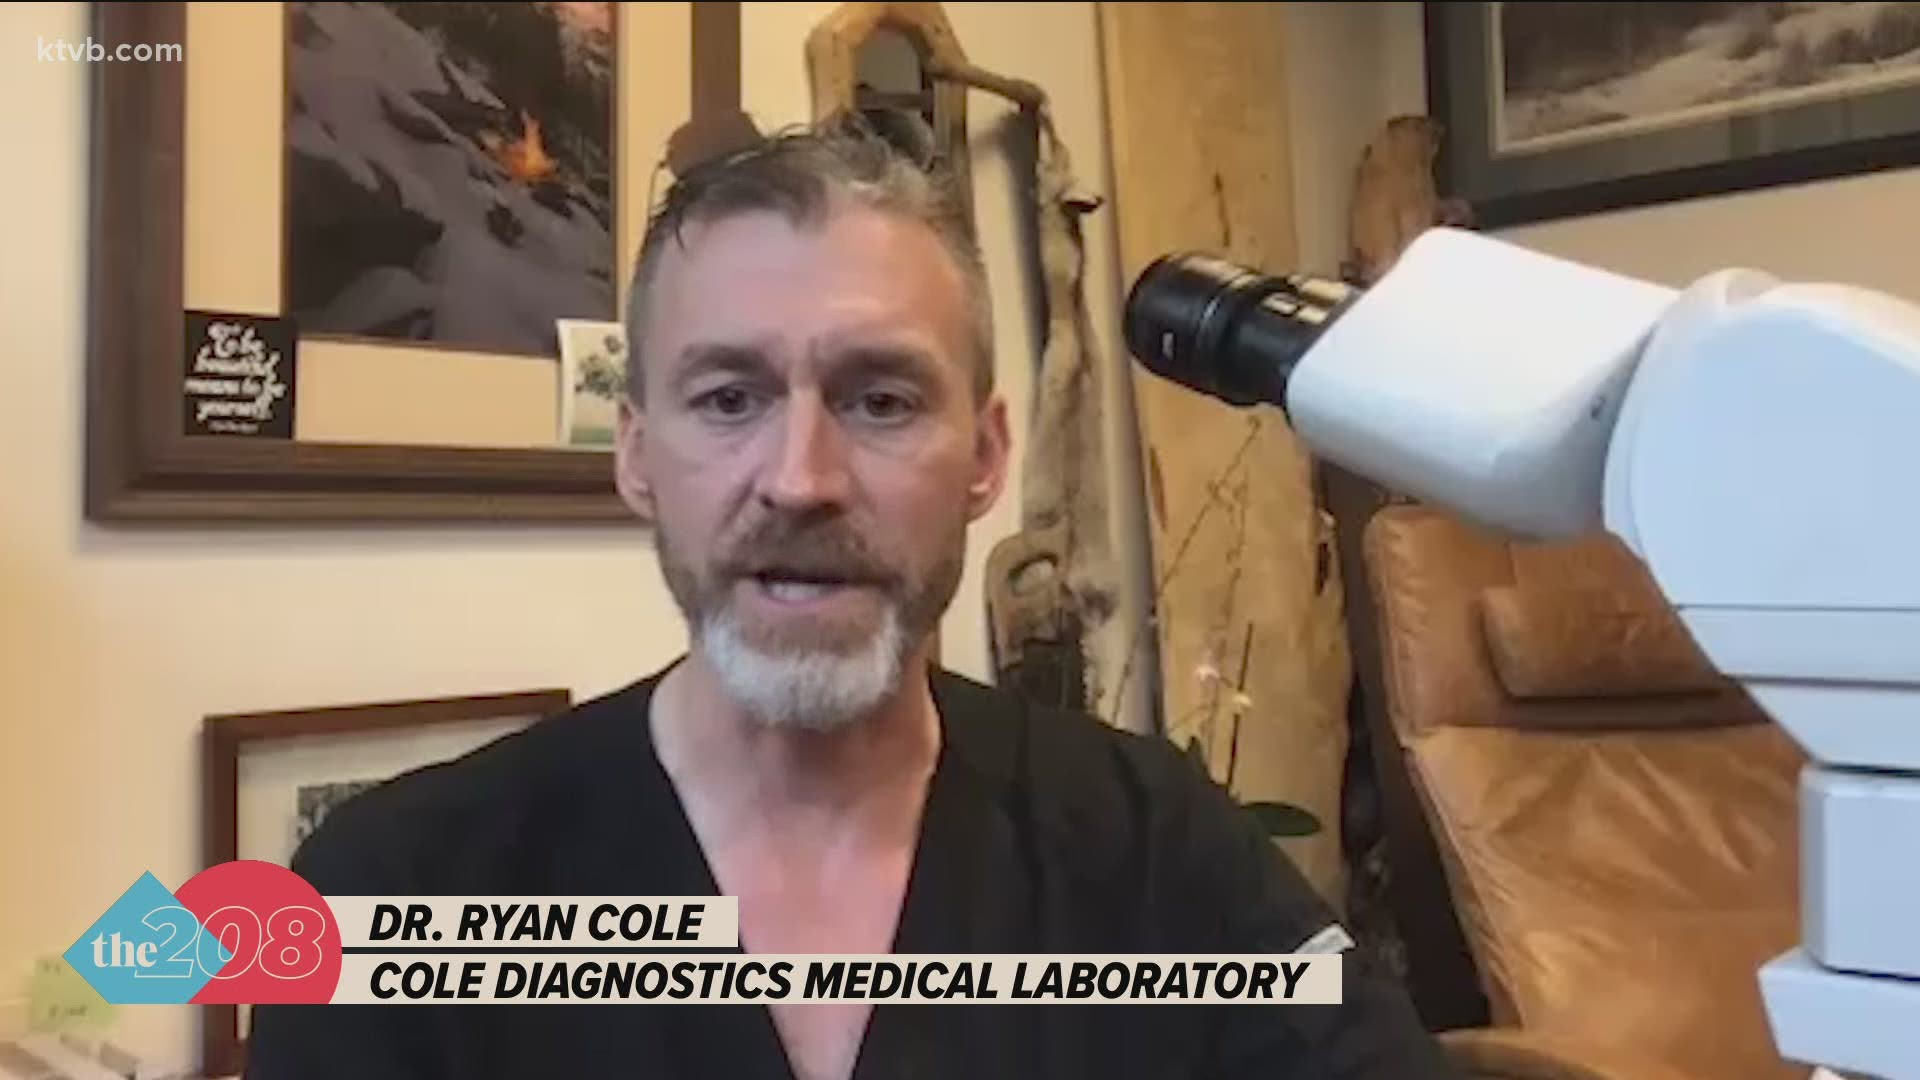 Another Medical Doctor Truth-Teller: Dr. Ryan Cole, Idaho